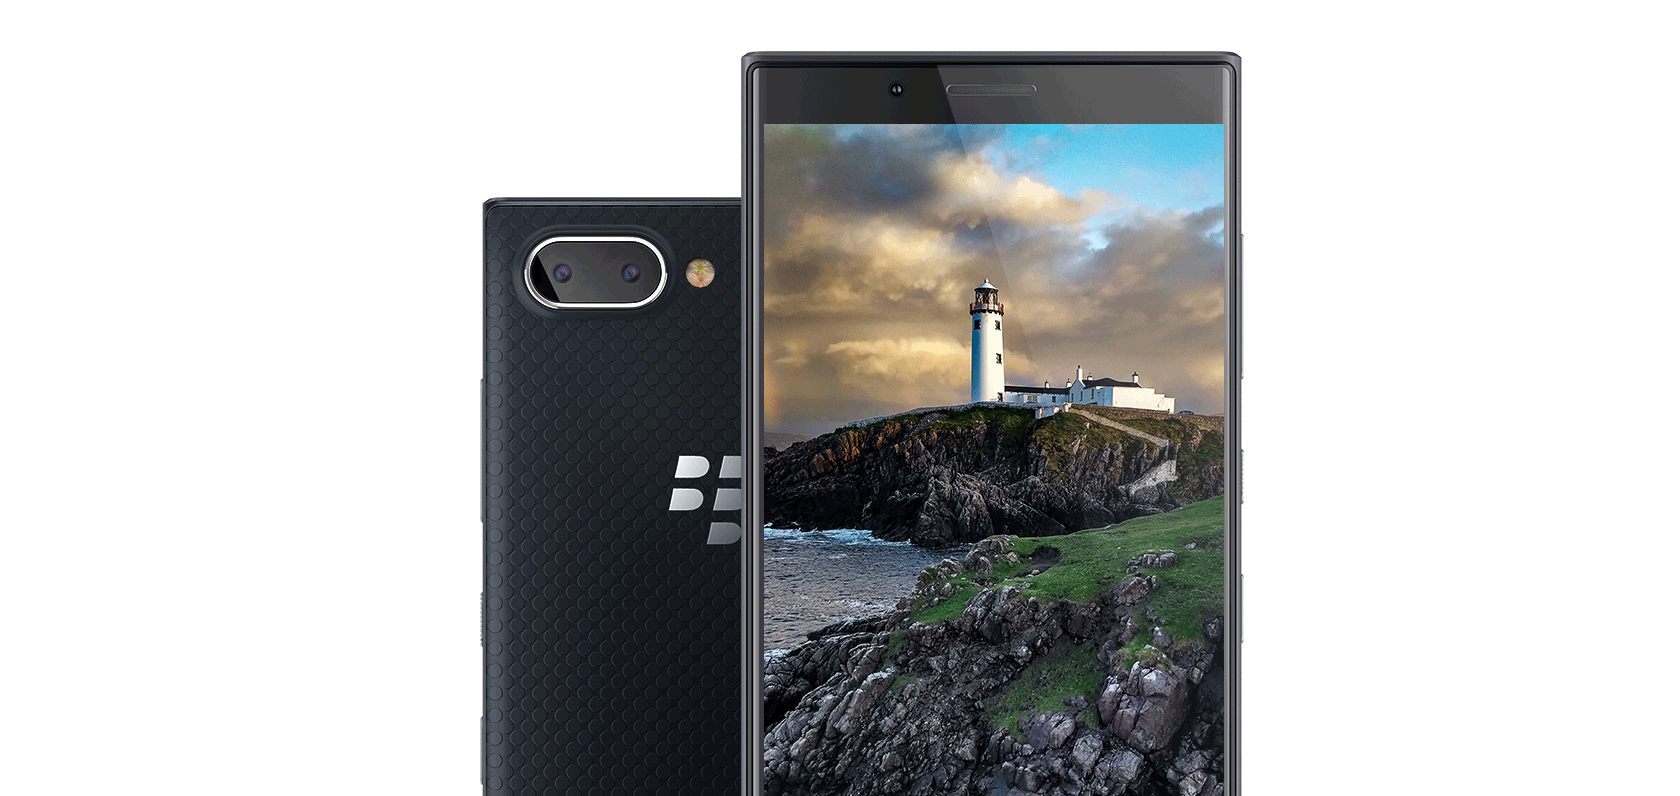 dualcamera2 - BlackBerry KEY 2 LE